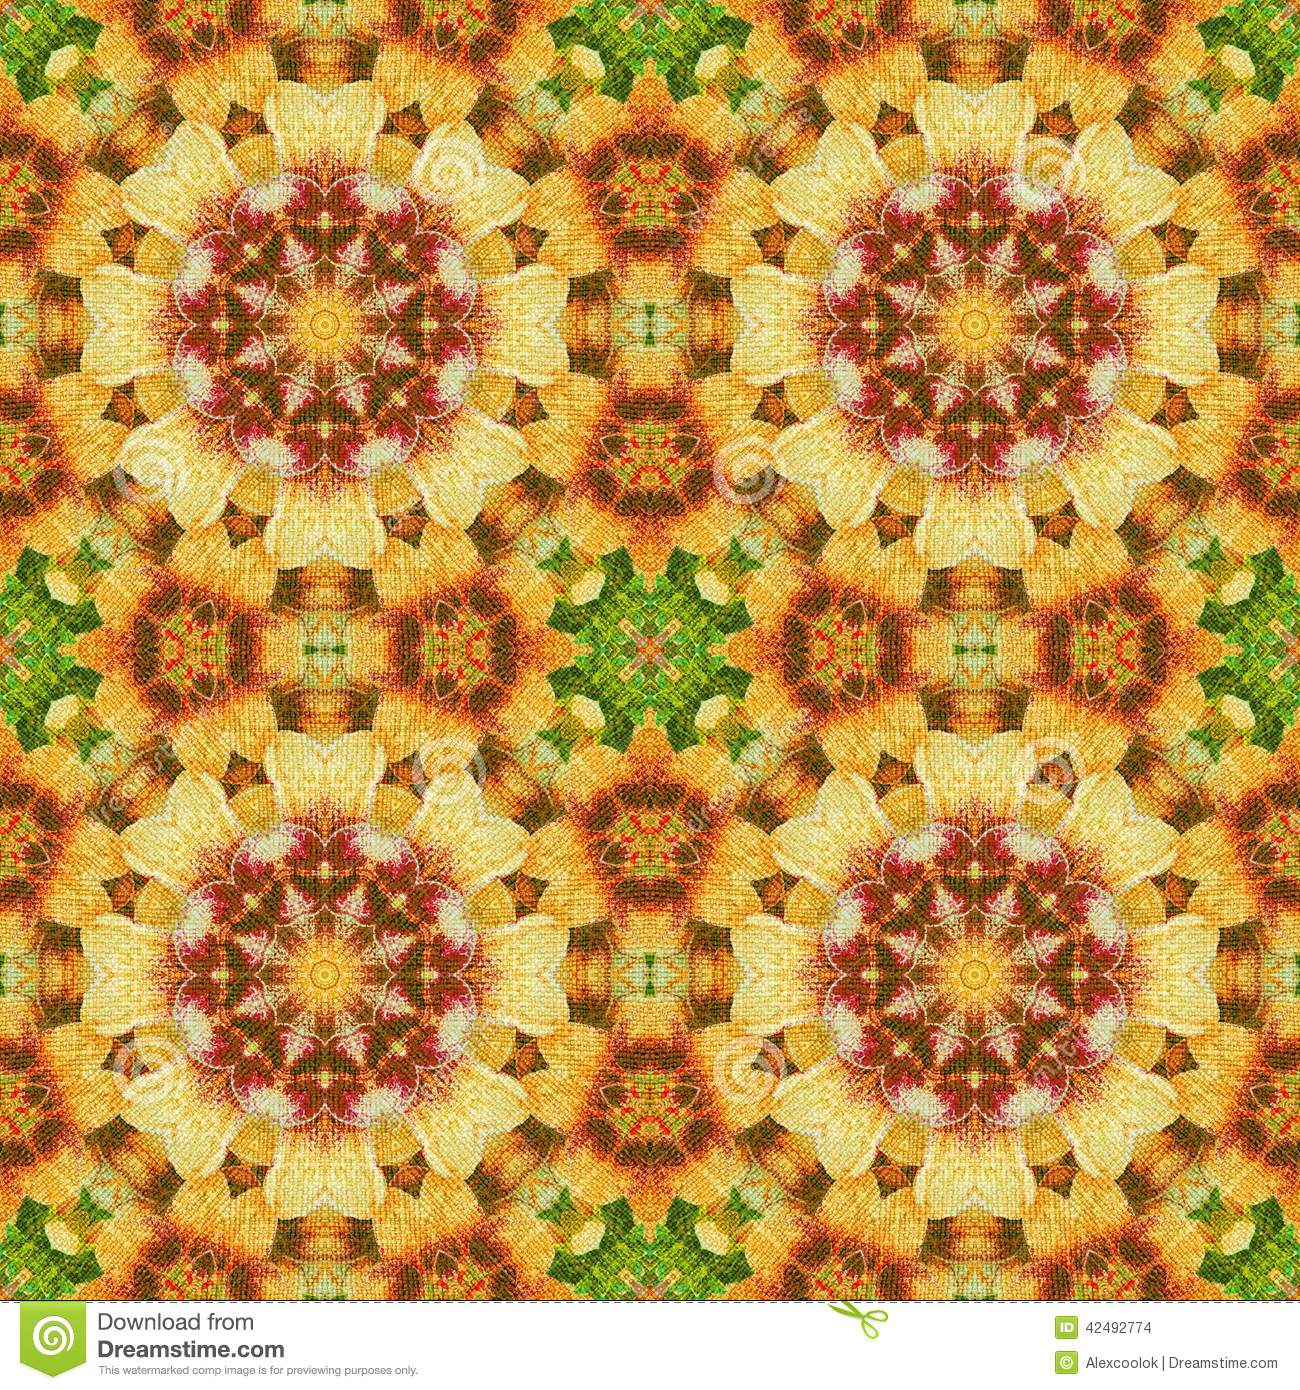 floral patterned canvas fabric - photo #6